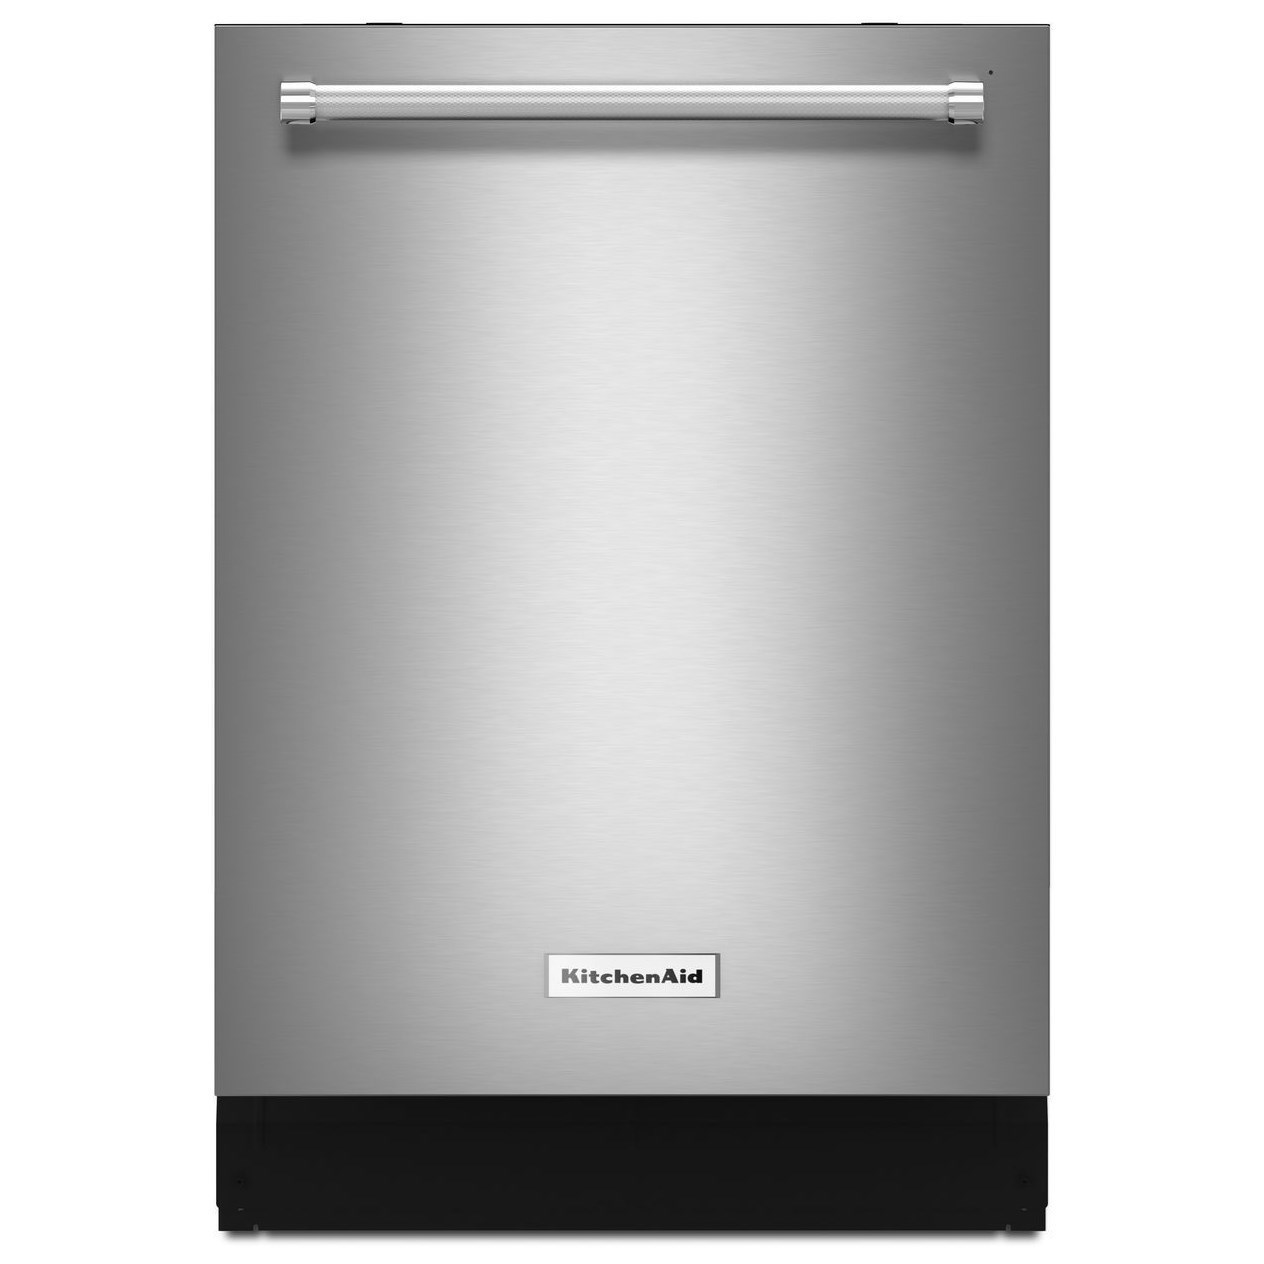 46 DBA Dishwasher